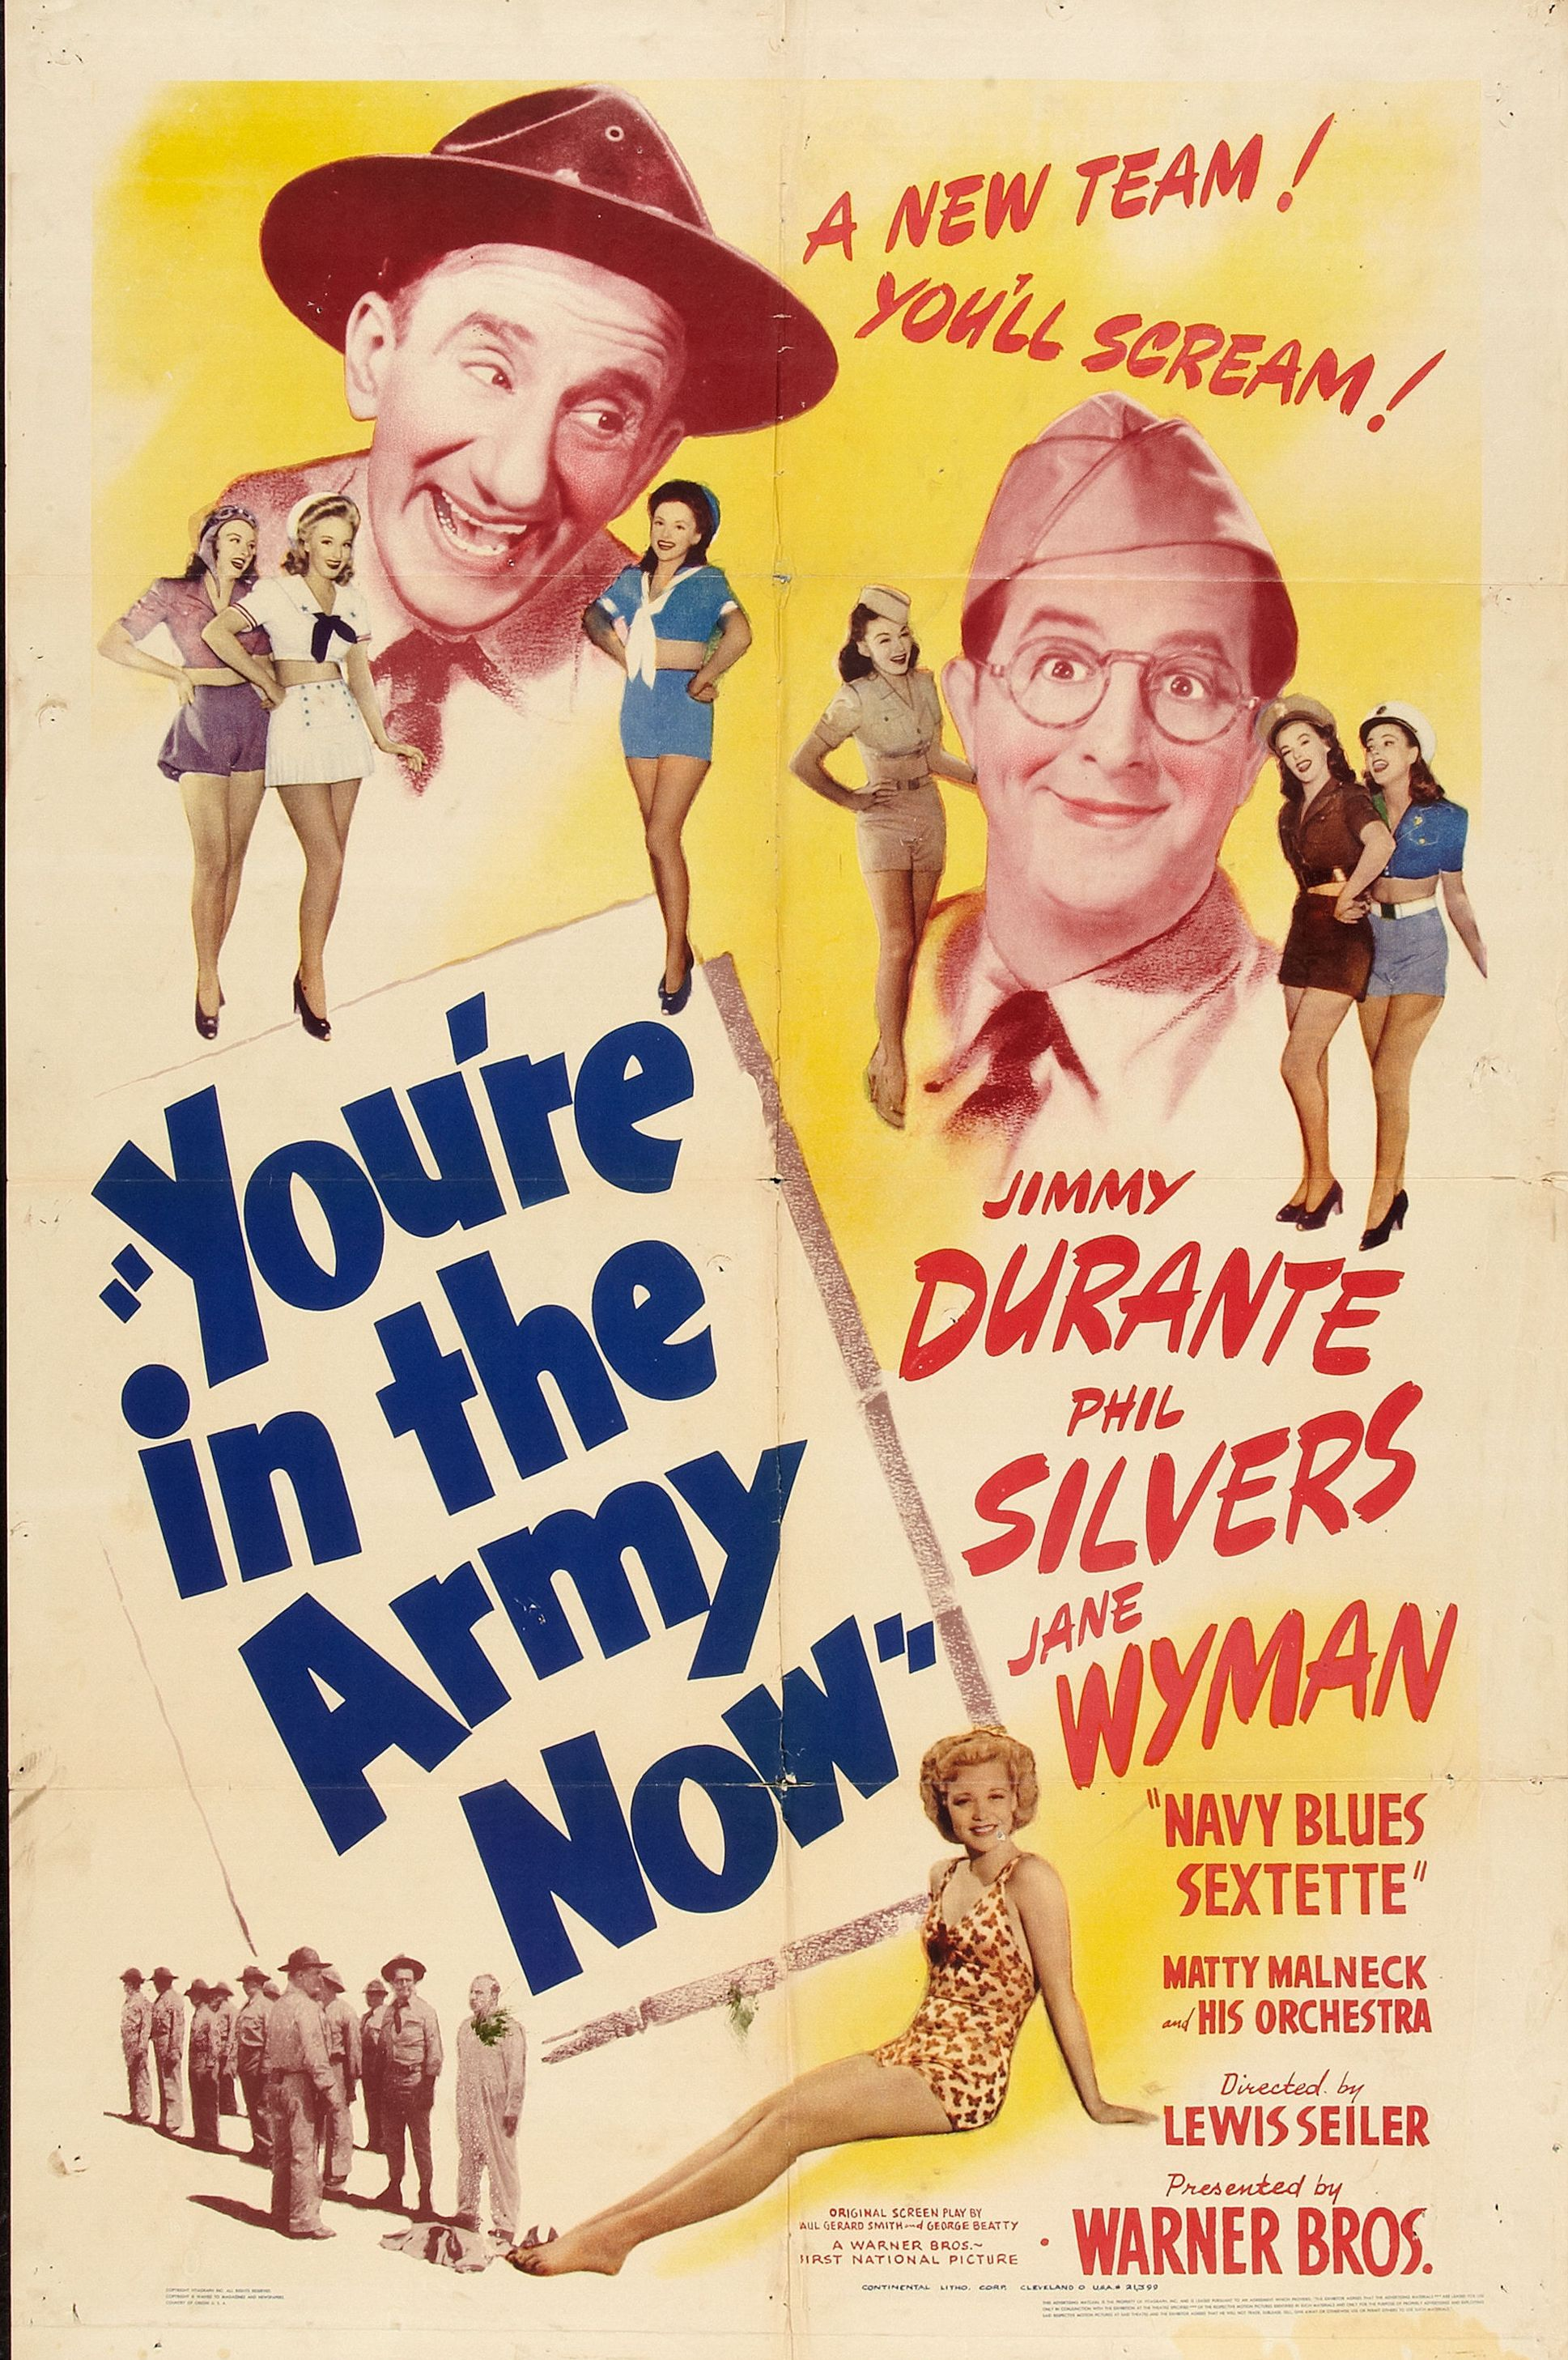 Jimmy Durante, Kay Aldridge, Leslie Brooks, Georgia Carroll, Marguerite Chapman, Peggy Diggins, Phil Silvers, Alix Talton, Jane Wyman, and Navy Blues Sextette in You're in the Army Now (1941)